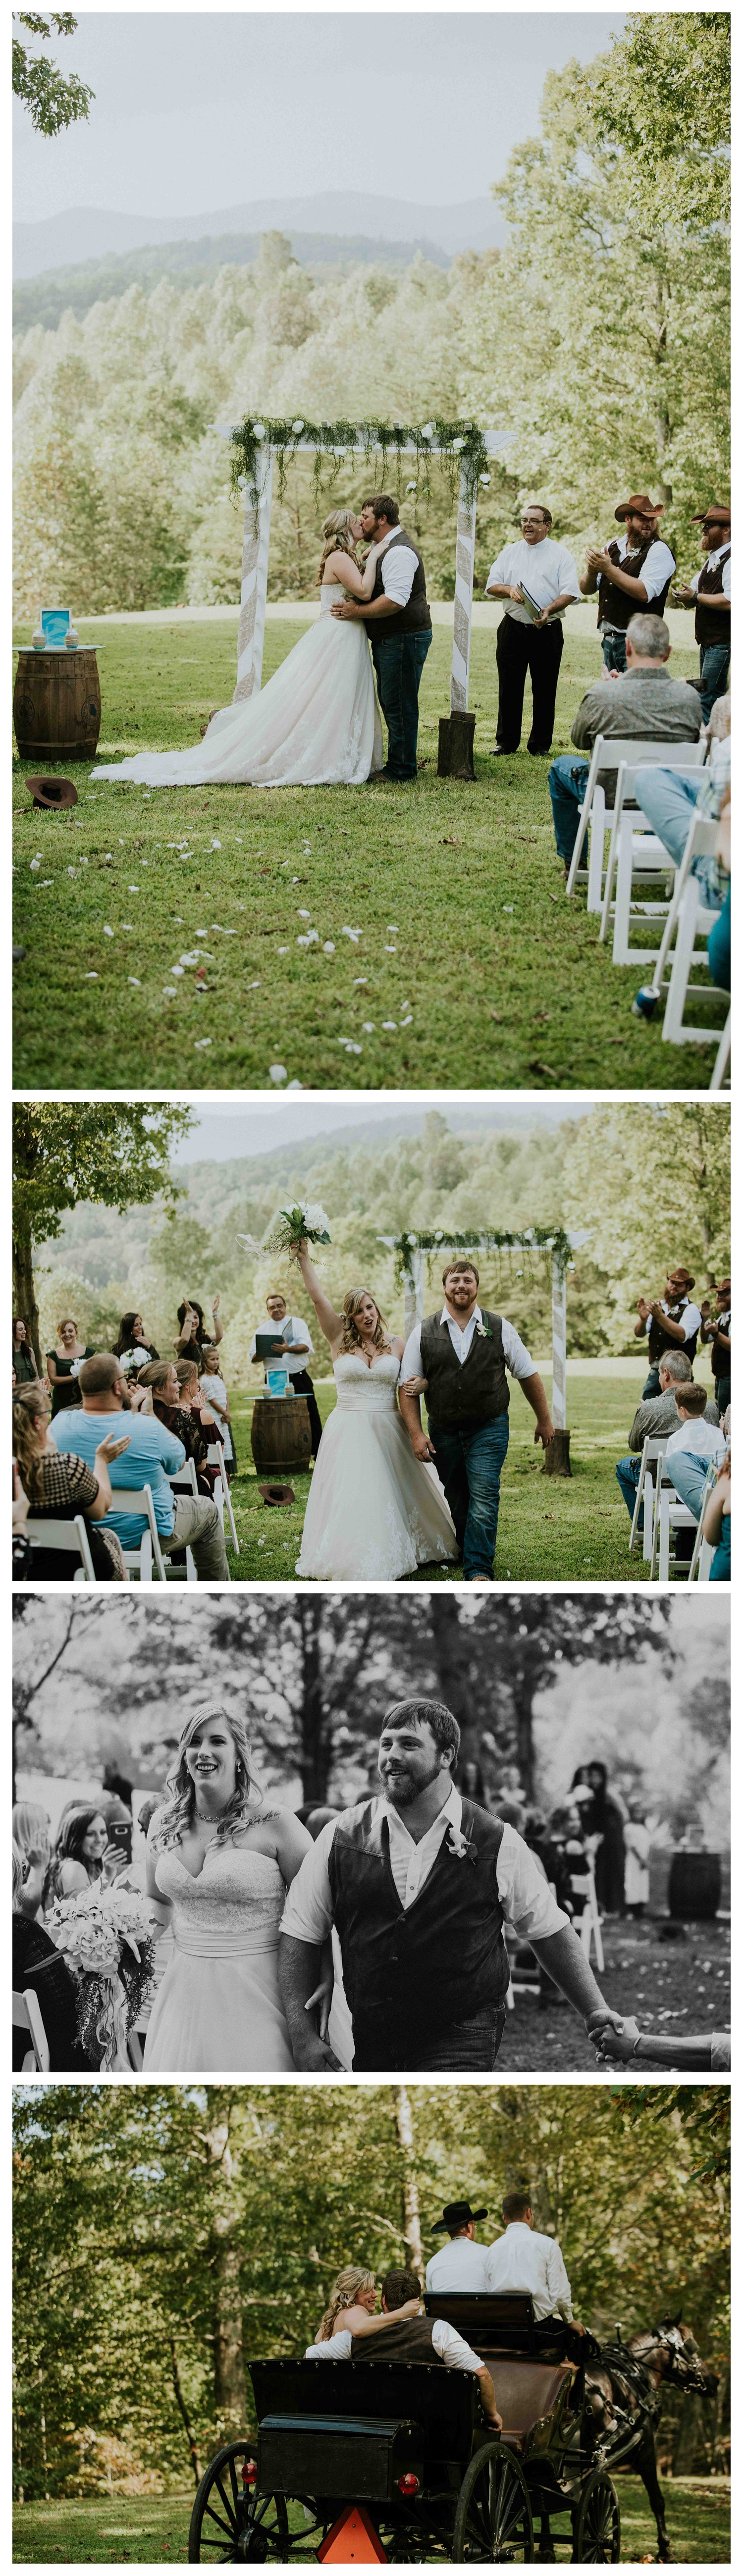 Destination Wedding Photographer R-Ranch in the Mountains Georgia Chloe Ann Photography_0007.jpg